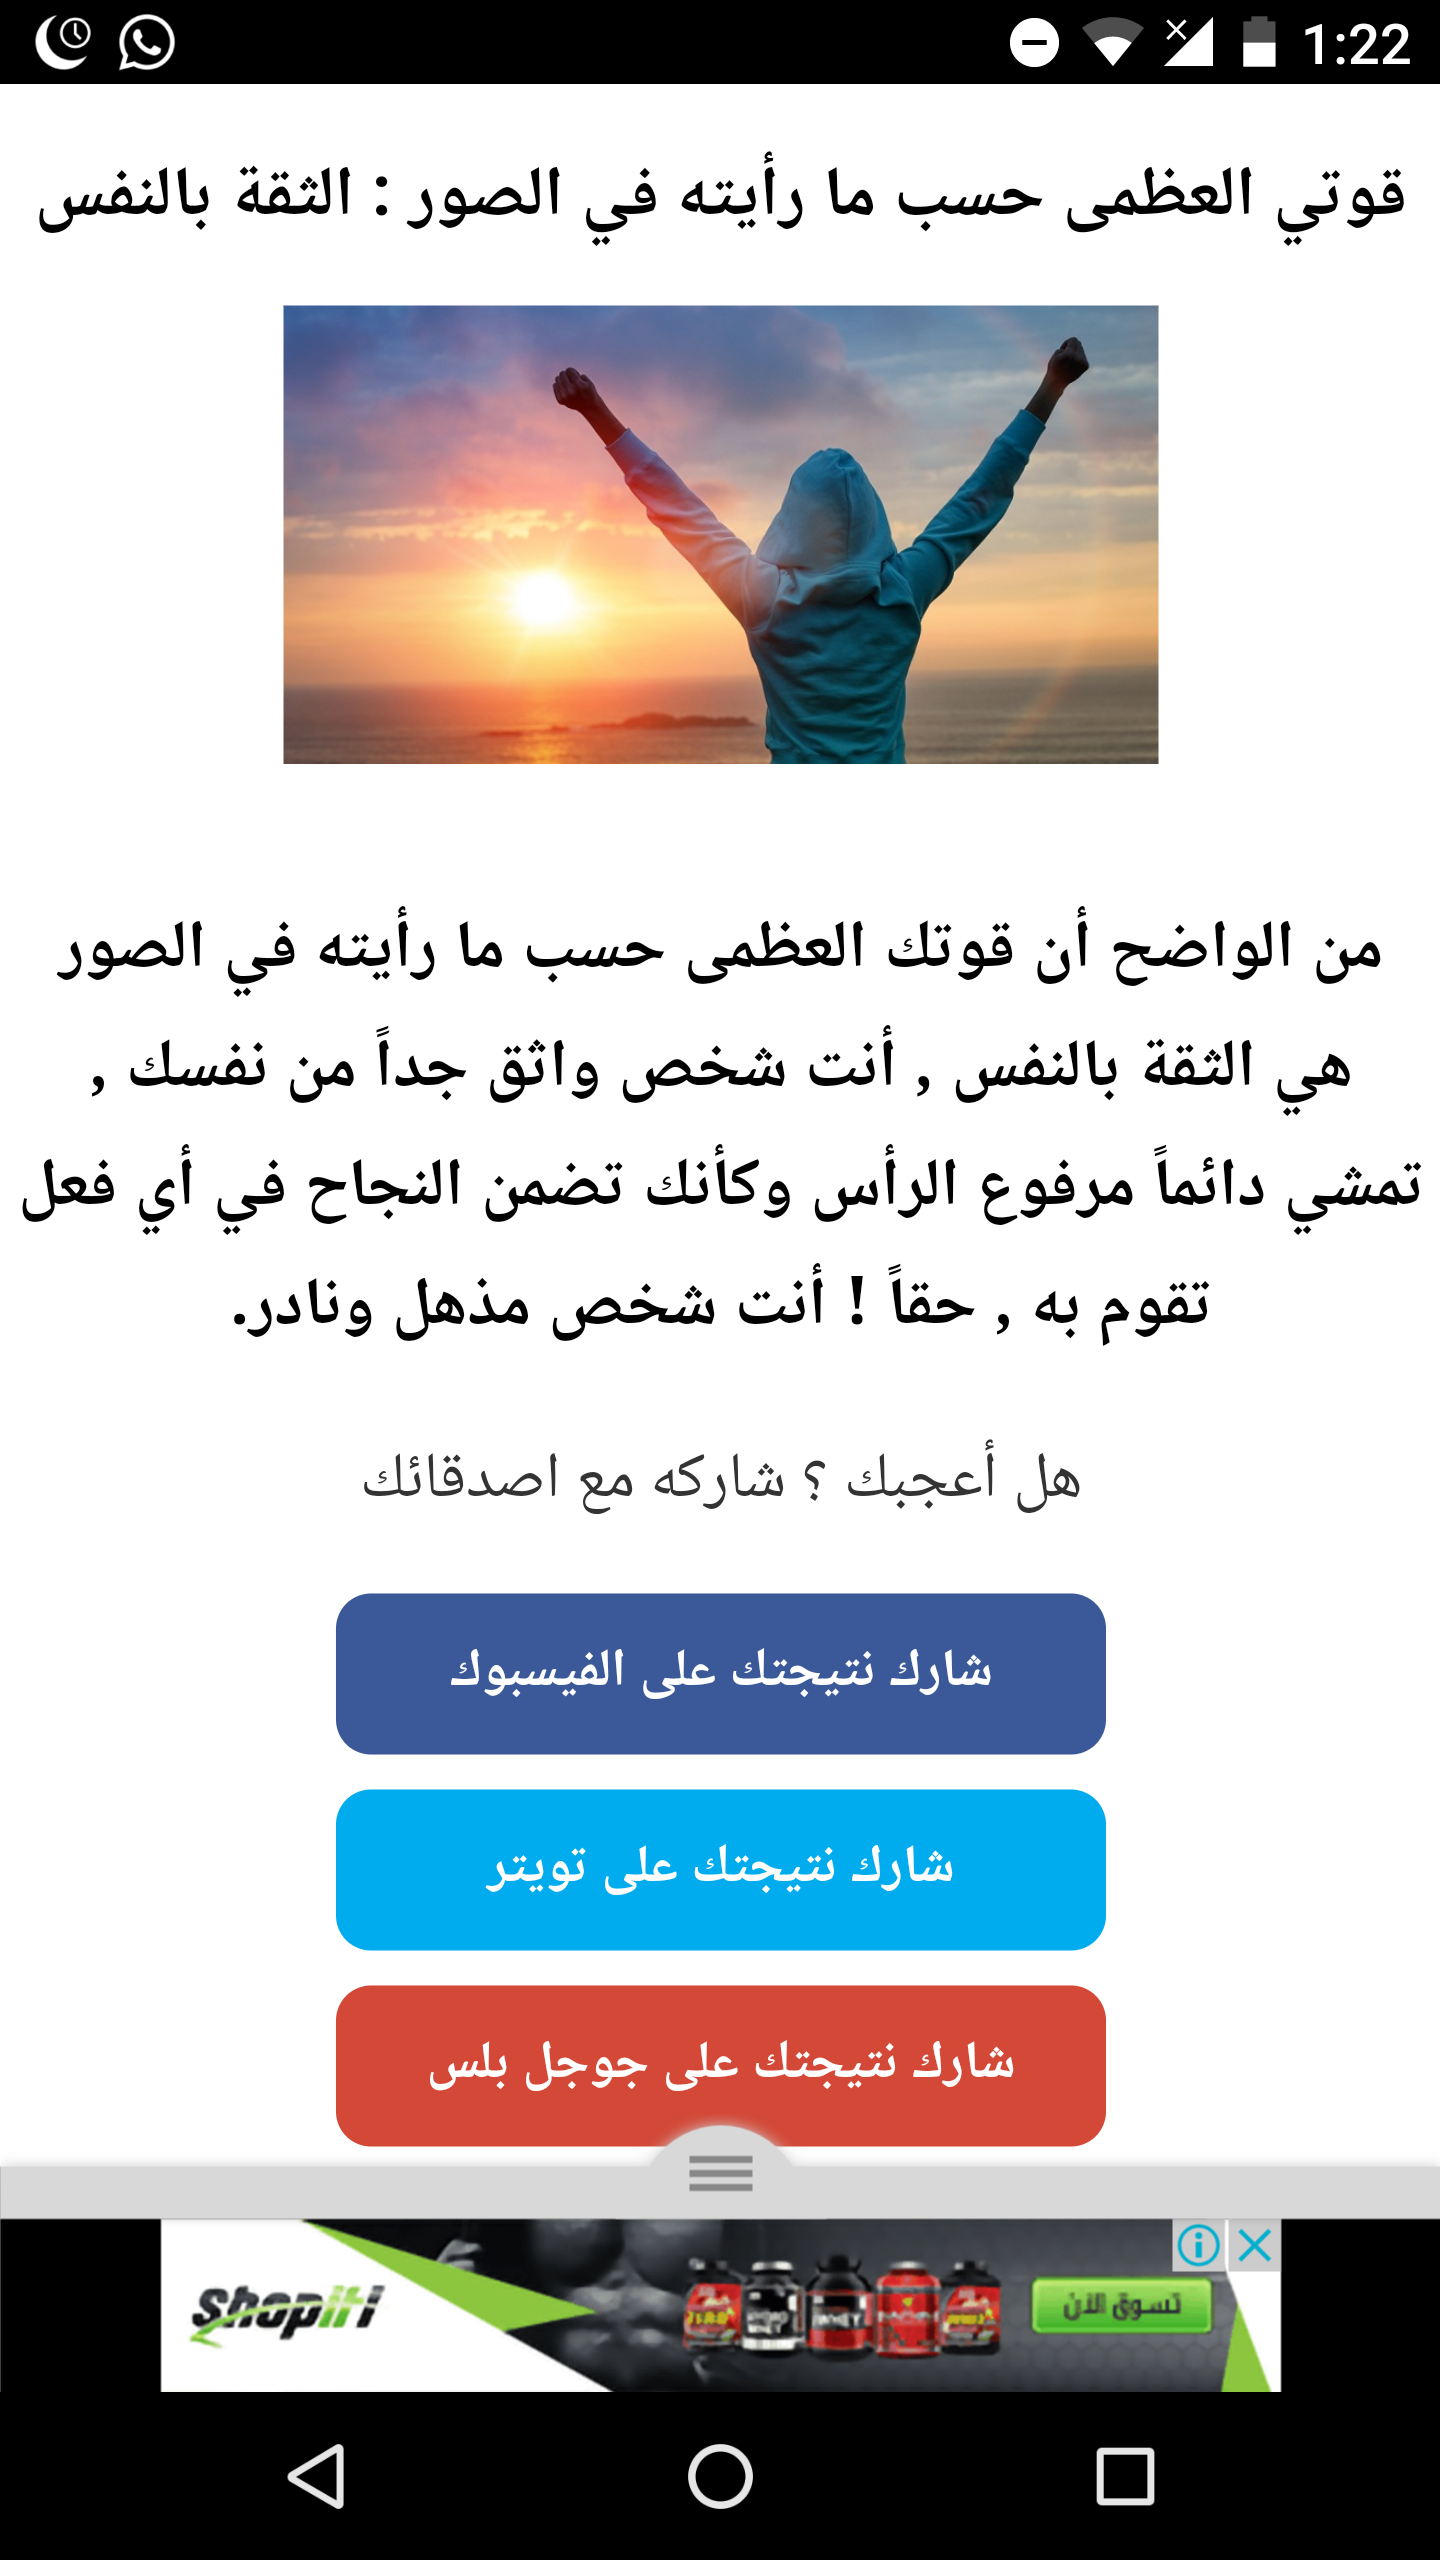 Screenshot_20170106-012205.